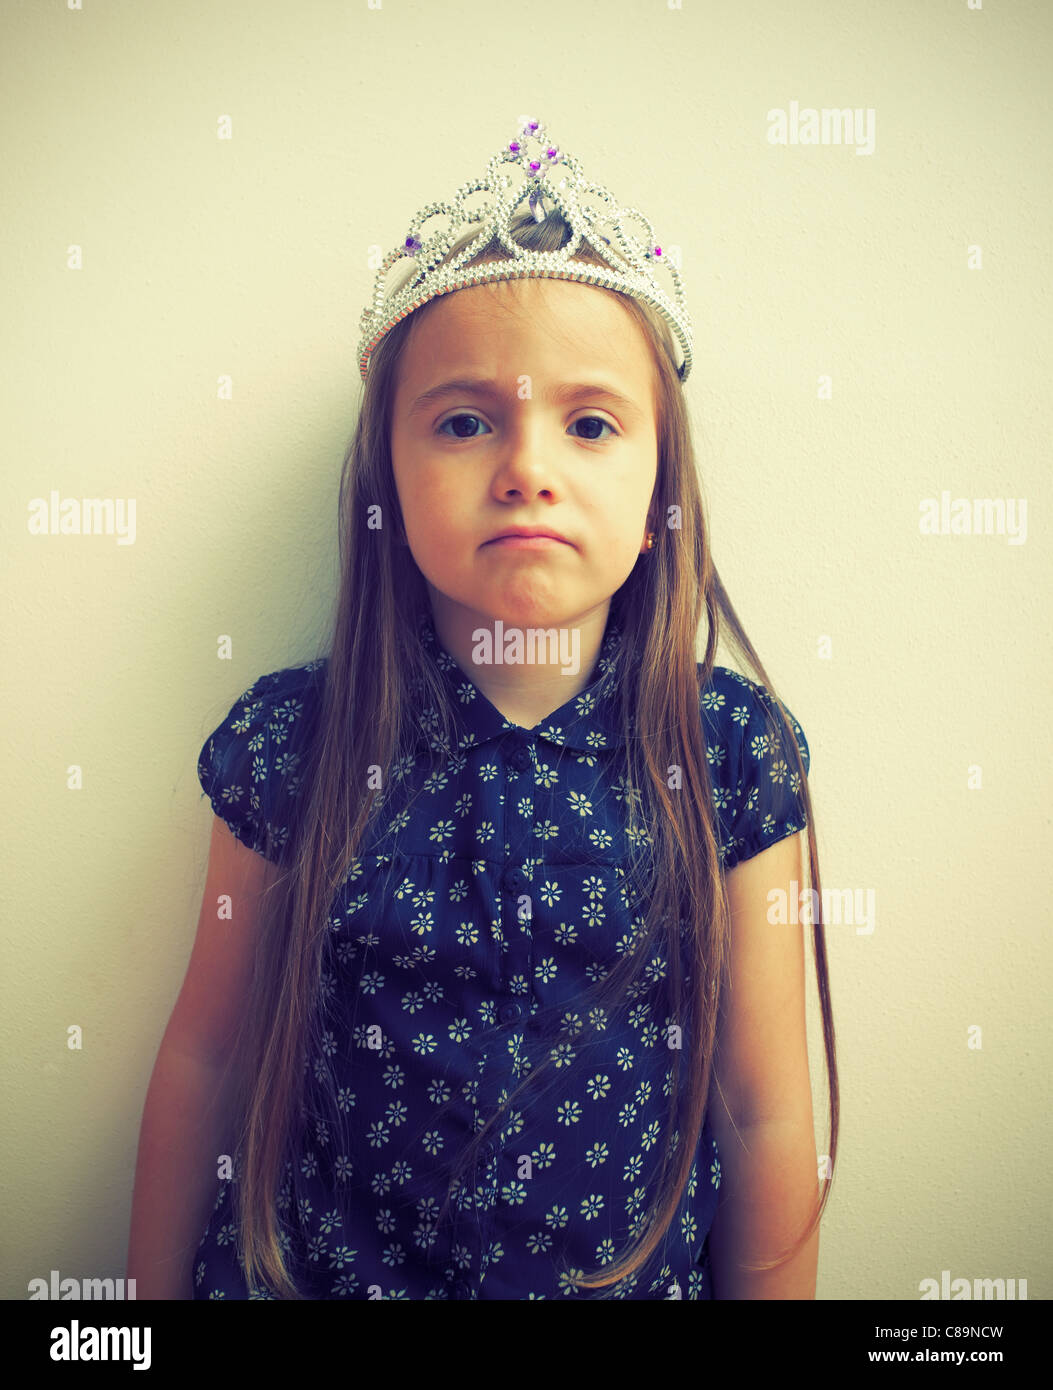 Cross-processed portrait of an ordinary girl with toy crown on her head - Stock Image